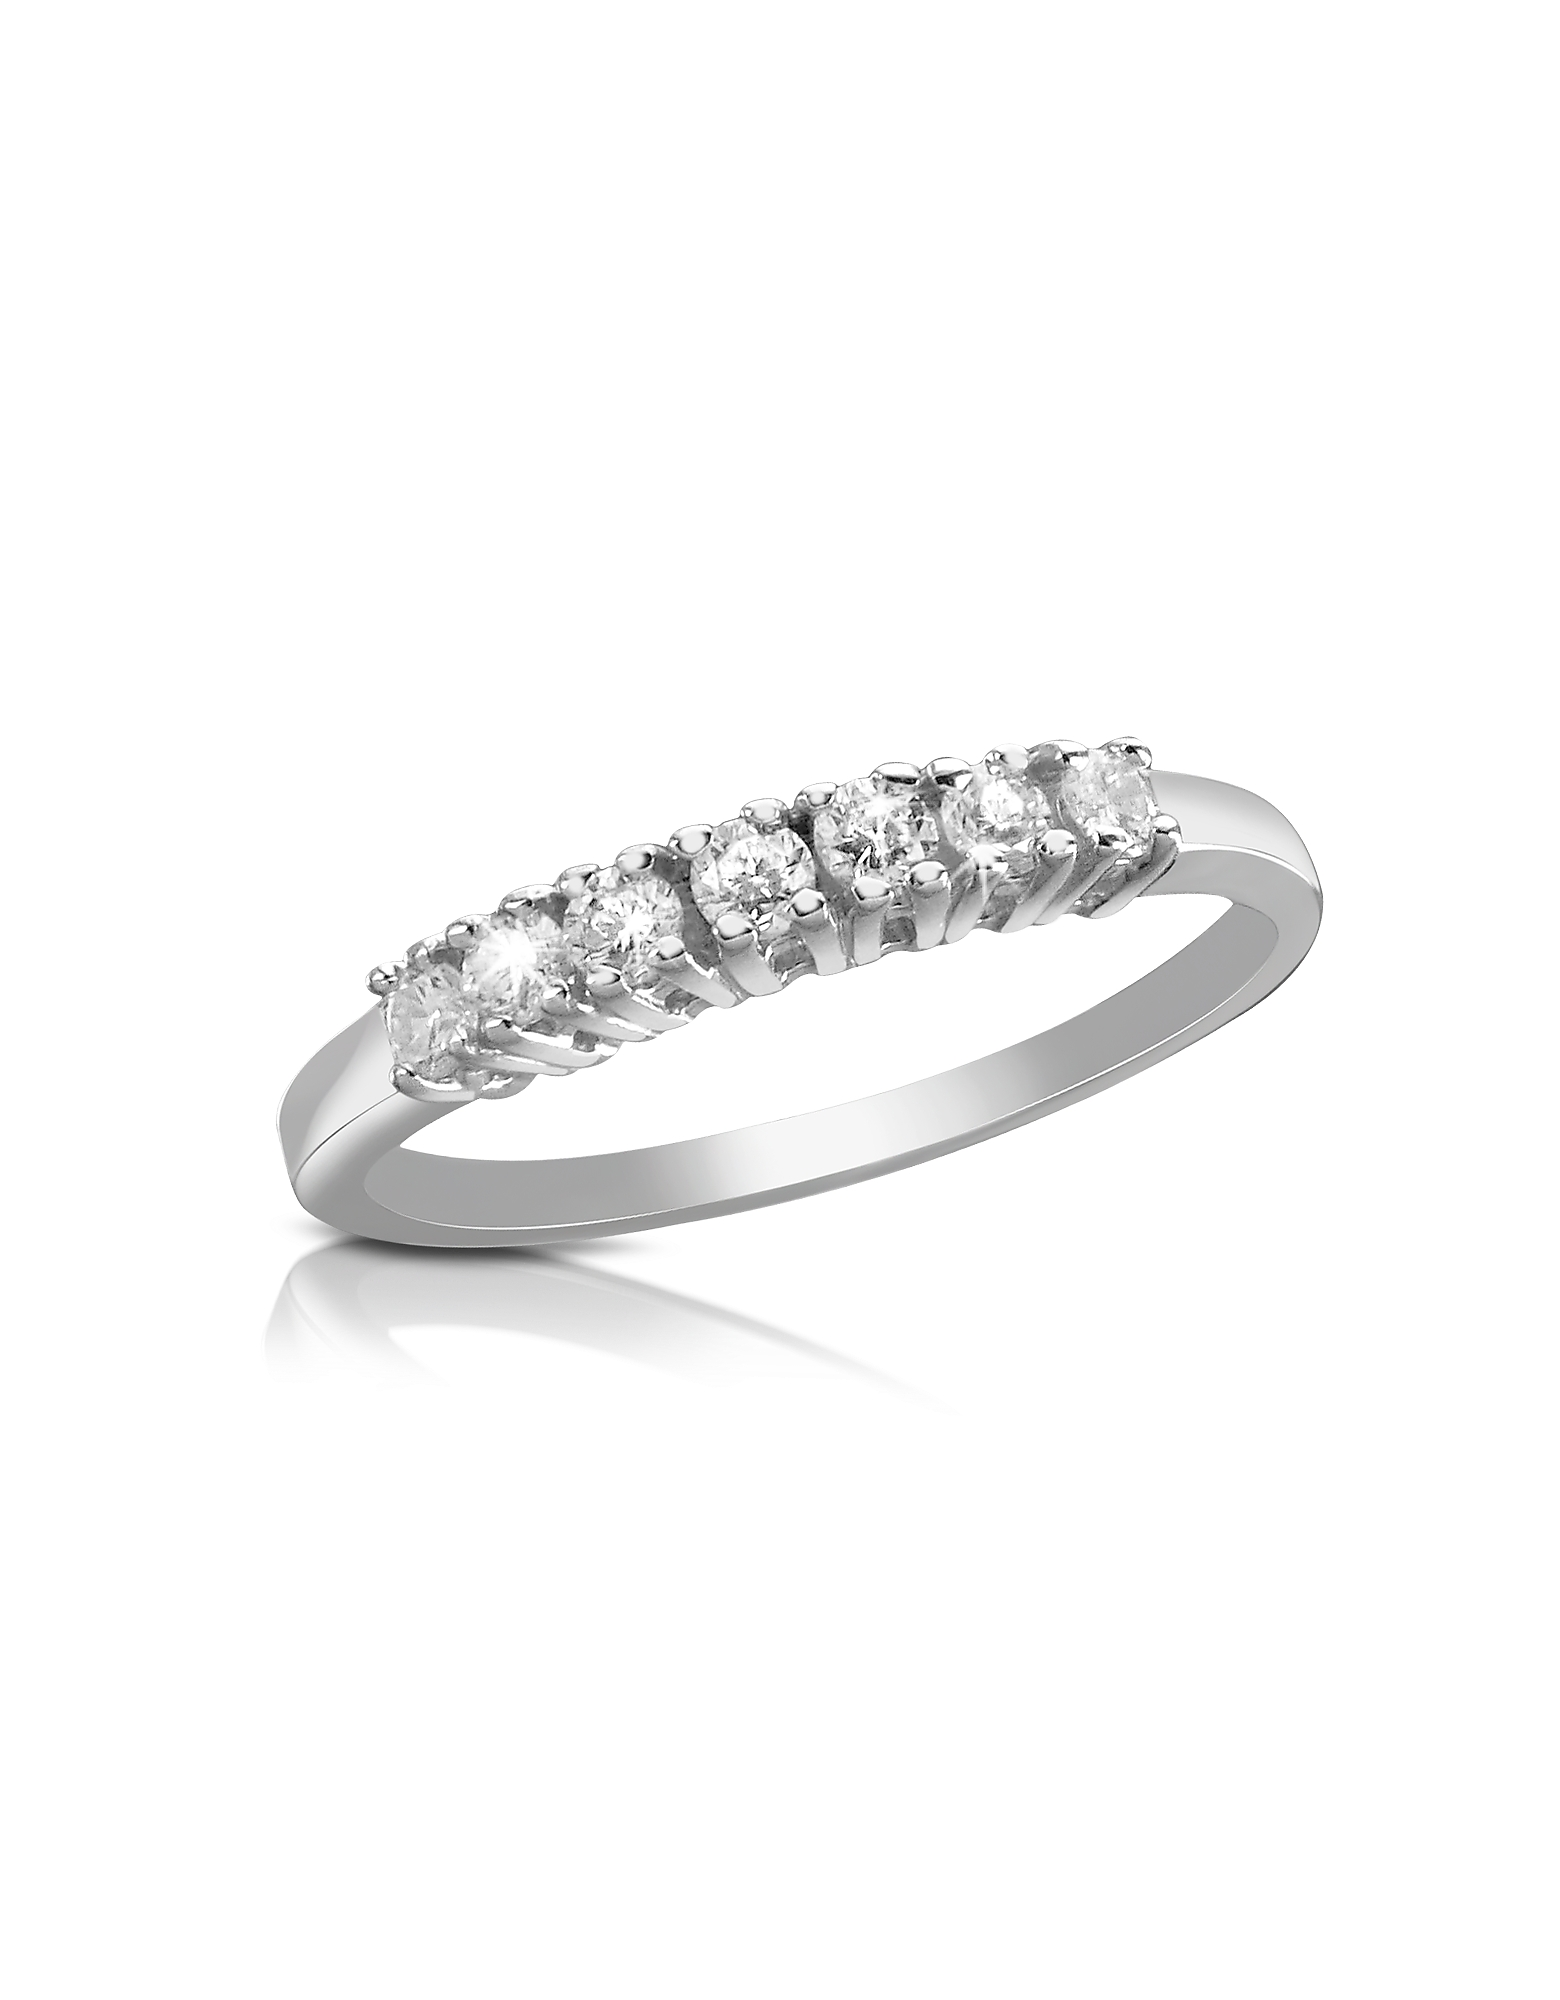 Forzieri Rings, 0.24 ct Diamond 18K Gold Band Ring